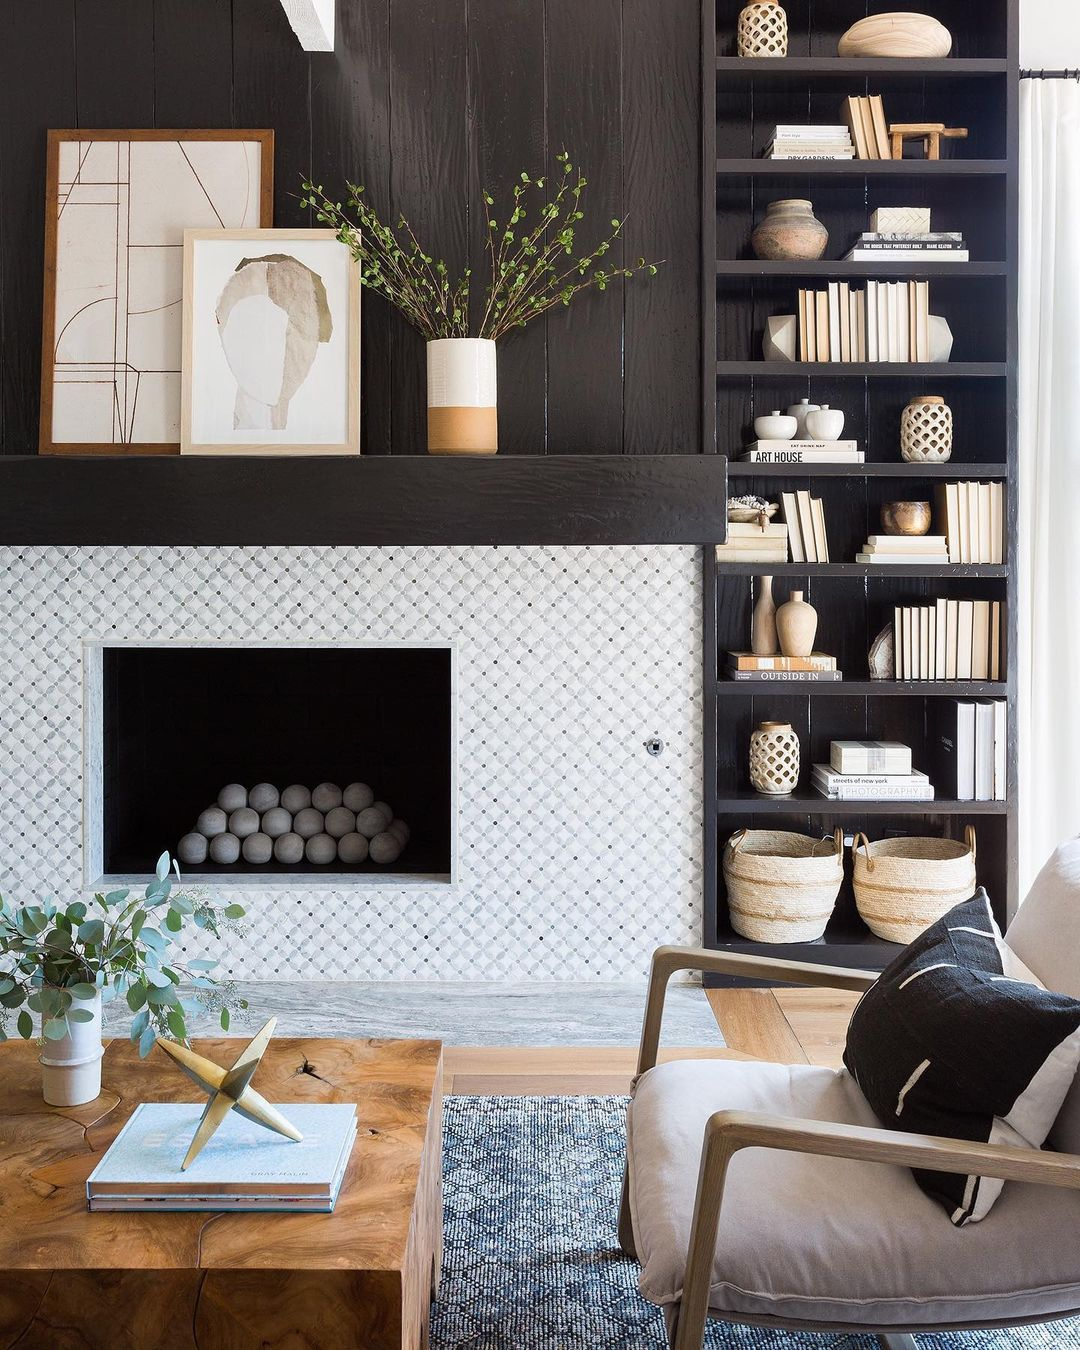 50 Cozy Fireplace Ideas For Your Home